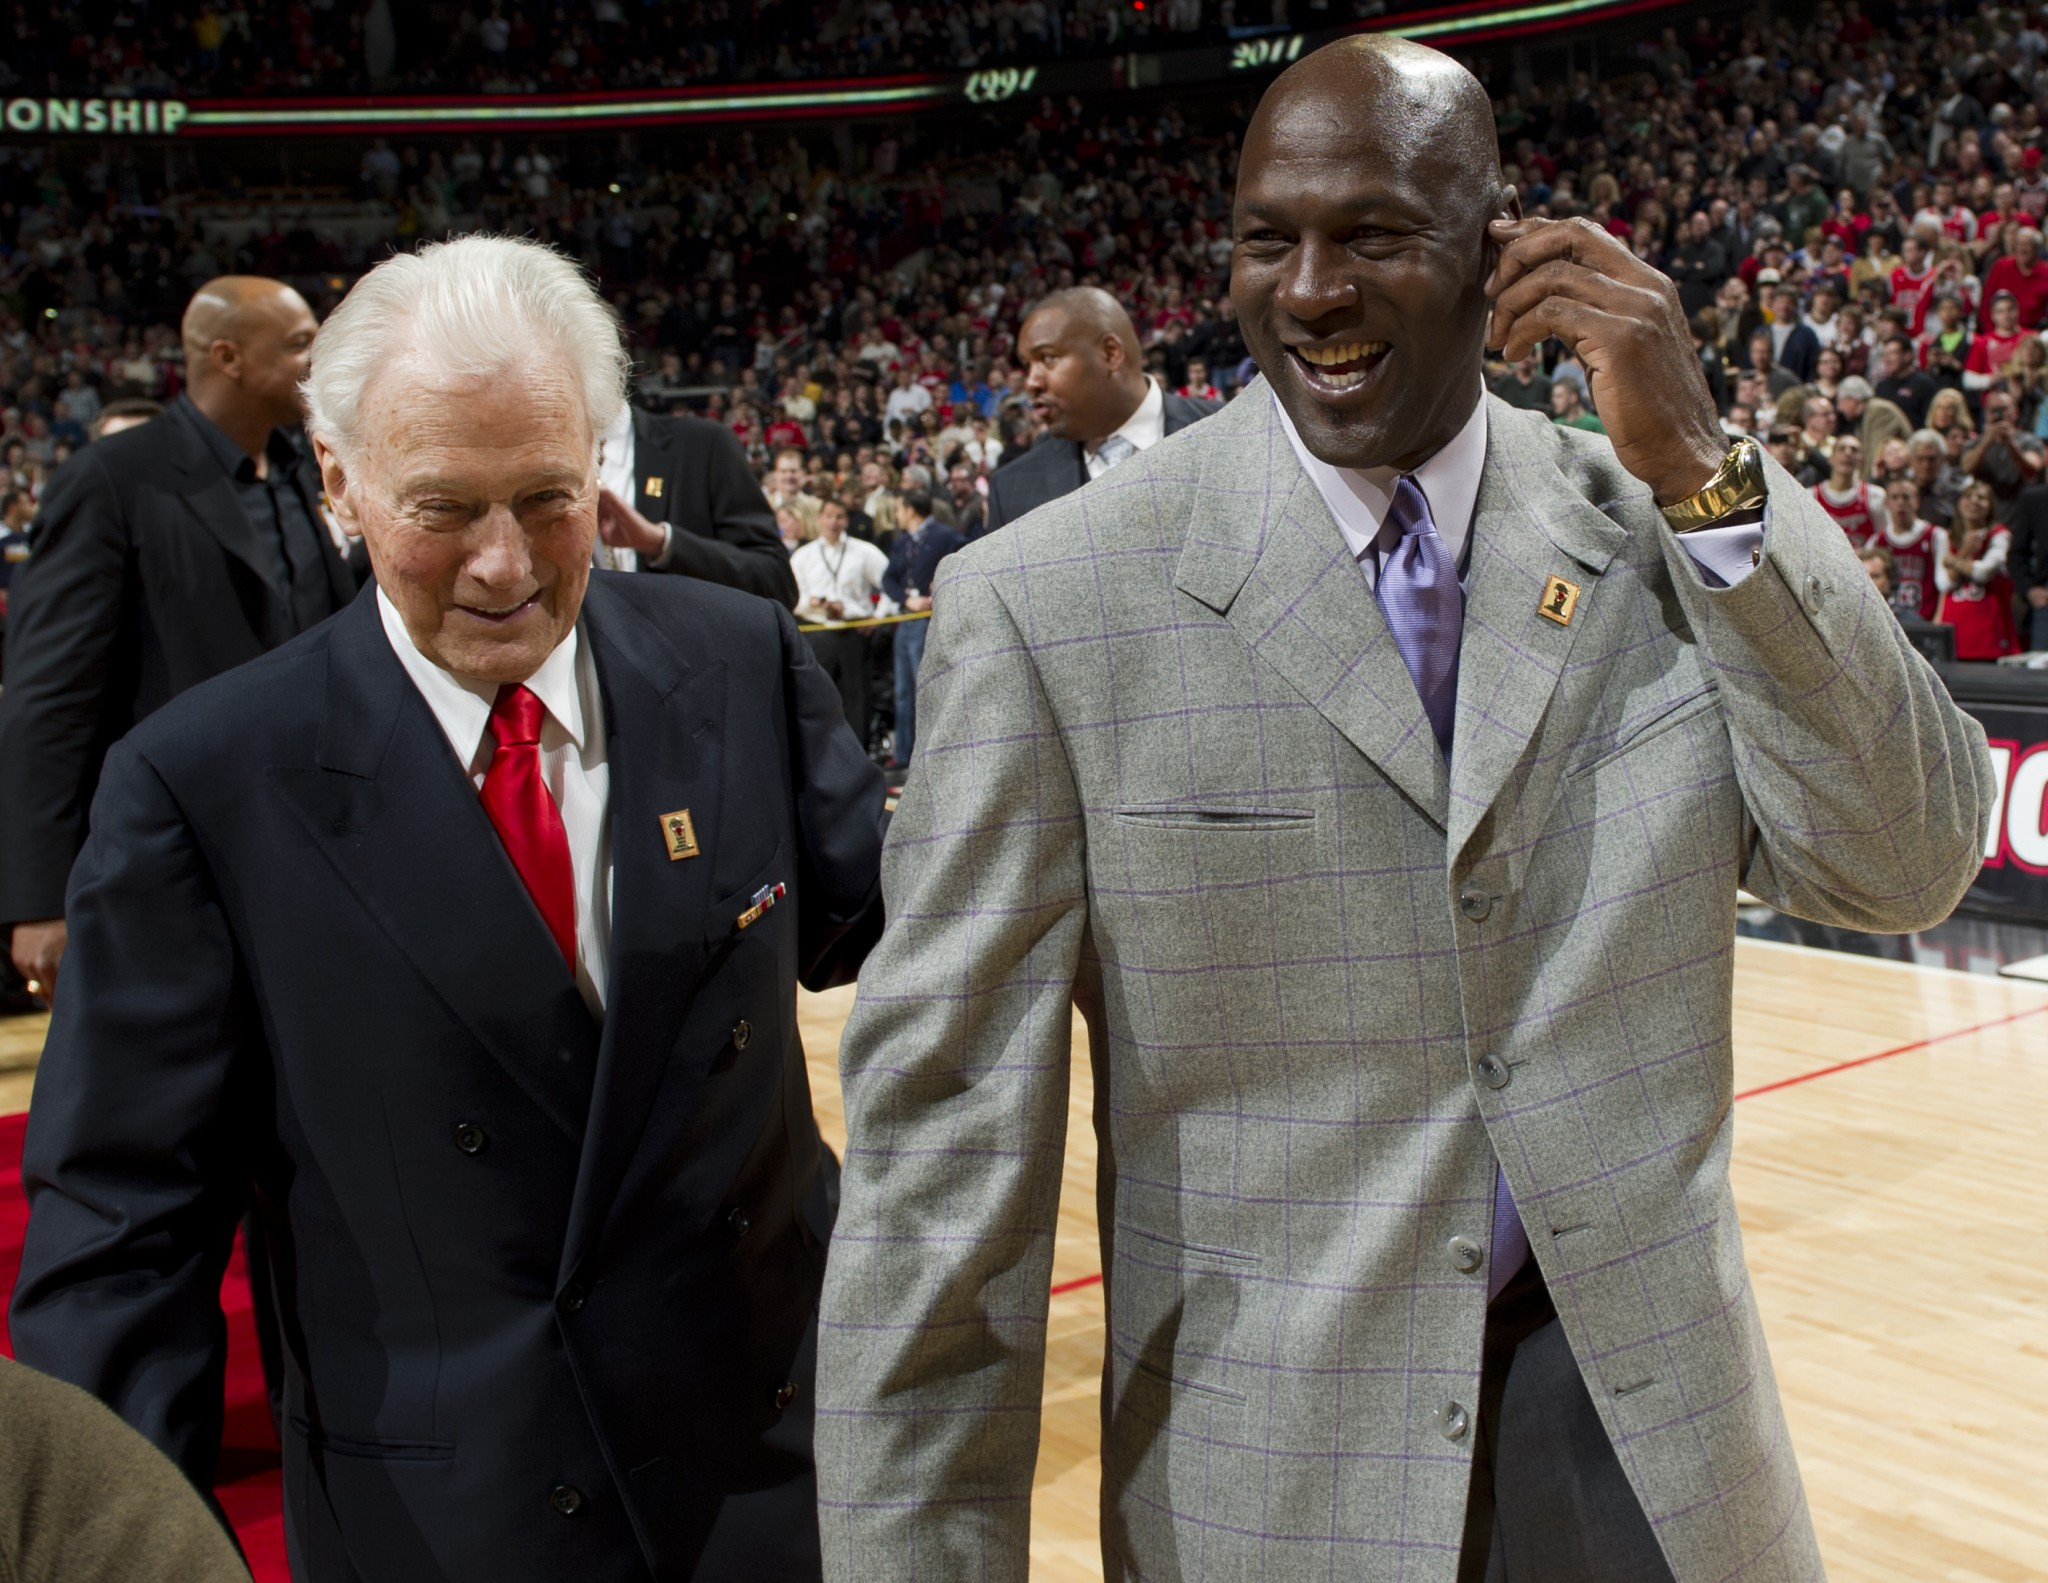 2011 - Johnny Bach & Michael Jordan - v UT 03-12-11_534